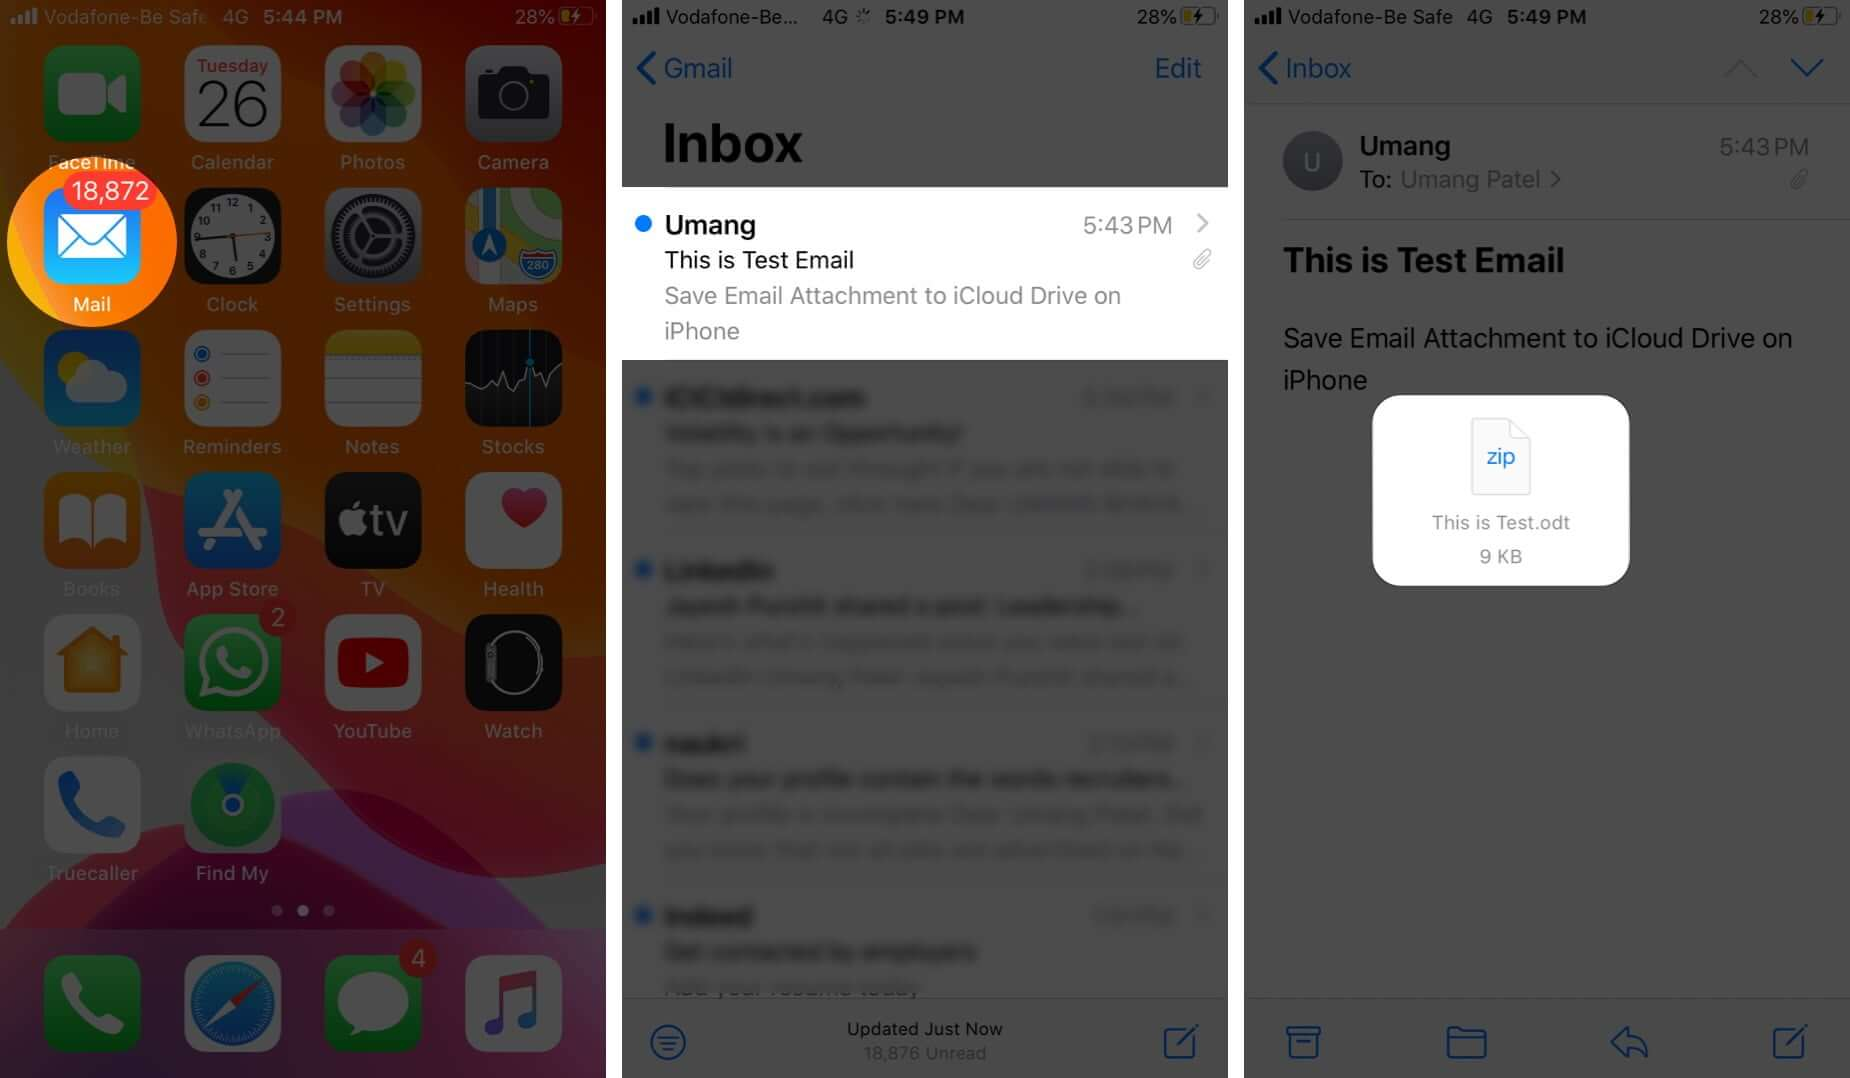 Open Mail App Tap on Email and Then Tap on Attachment on iPhone